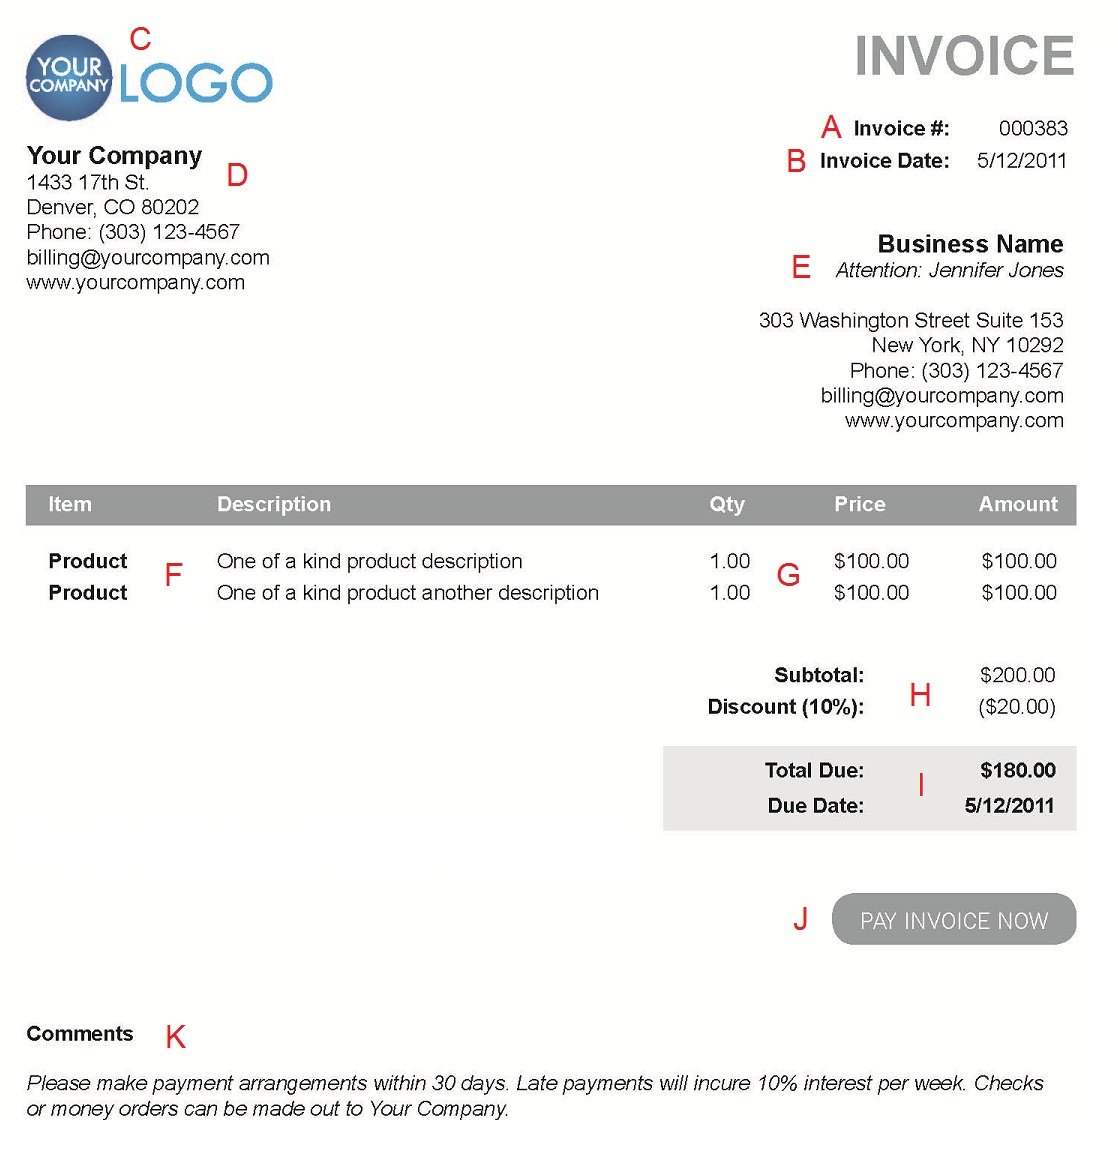 Offtheshelfus  Wonderful The  Different Sections Of An Electronic Payment Invoice With Glamorous A  With Astounding Free Invoice Software Mac Also Bamboo Invoice In Addition Invoice App For Iphone And Invoice Pay As Well As Invoice Example Pdf Additionally Free Invoicing Software Mac From Paysimplecom With Offtheshelfus  Glamorous The  Different Sections Of An Electronic Payment Invoice With Astounding A  And Wonderful Free Invoice Software Mac Also Bamboo Invoice In Addition Invoice App For Iphone From Paysimplecom